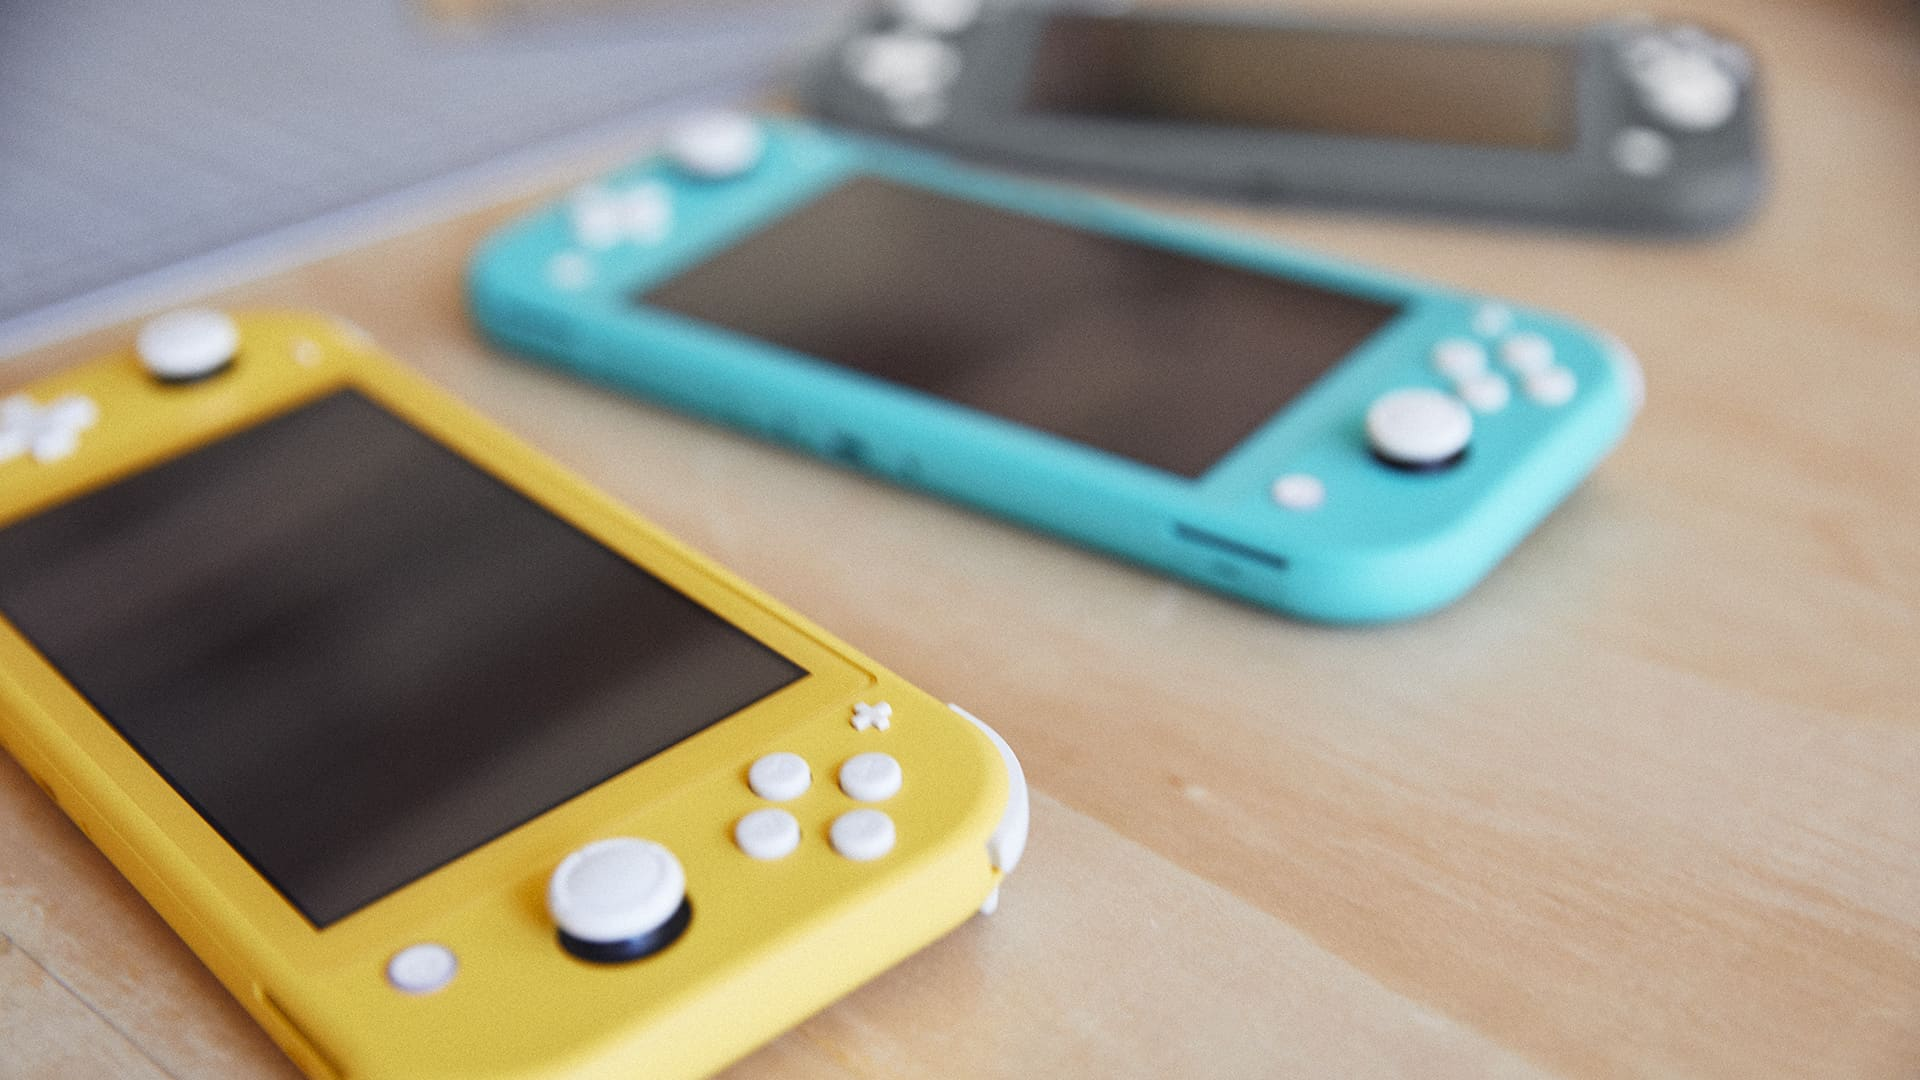 Nintendo Switch Lite: What it is and who should buy it